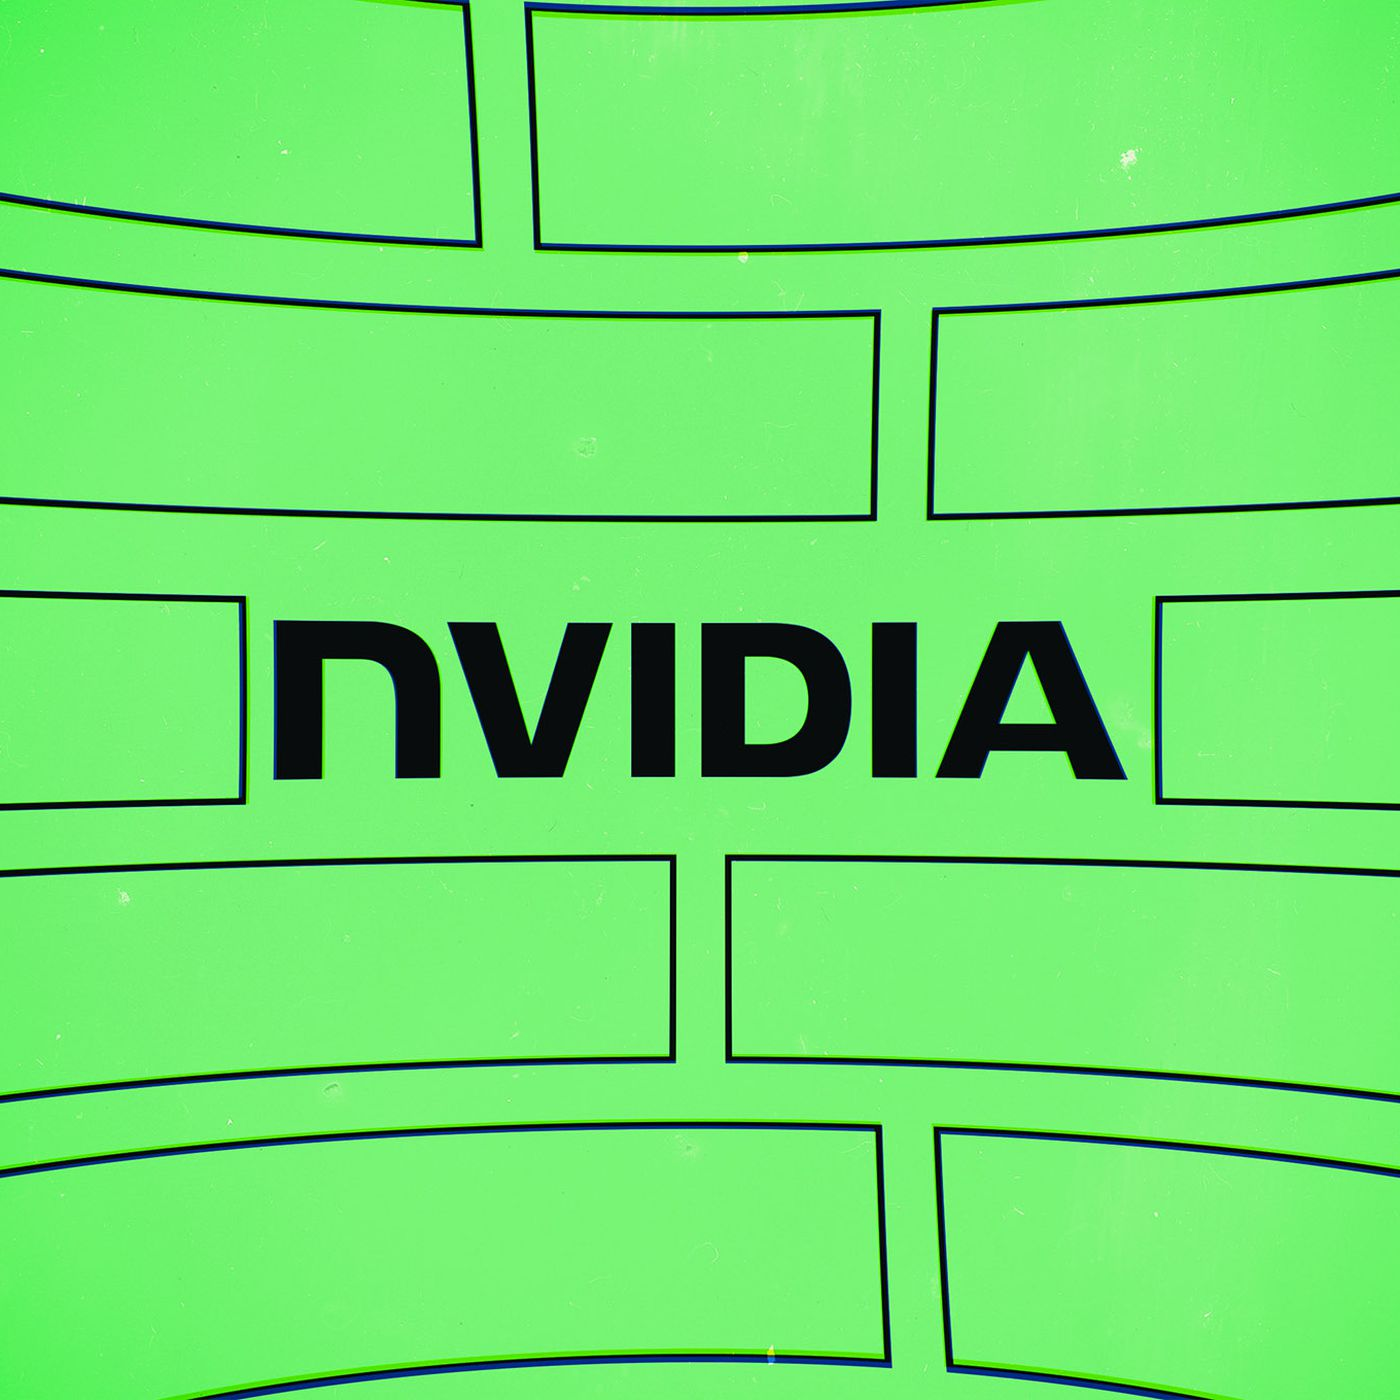 Nvidia GeForce RTX 2080 Ti leak reveals a very powerful graphics